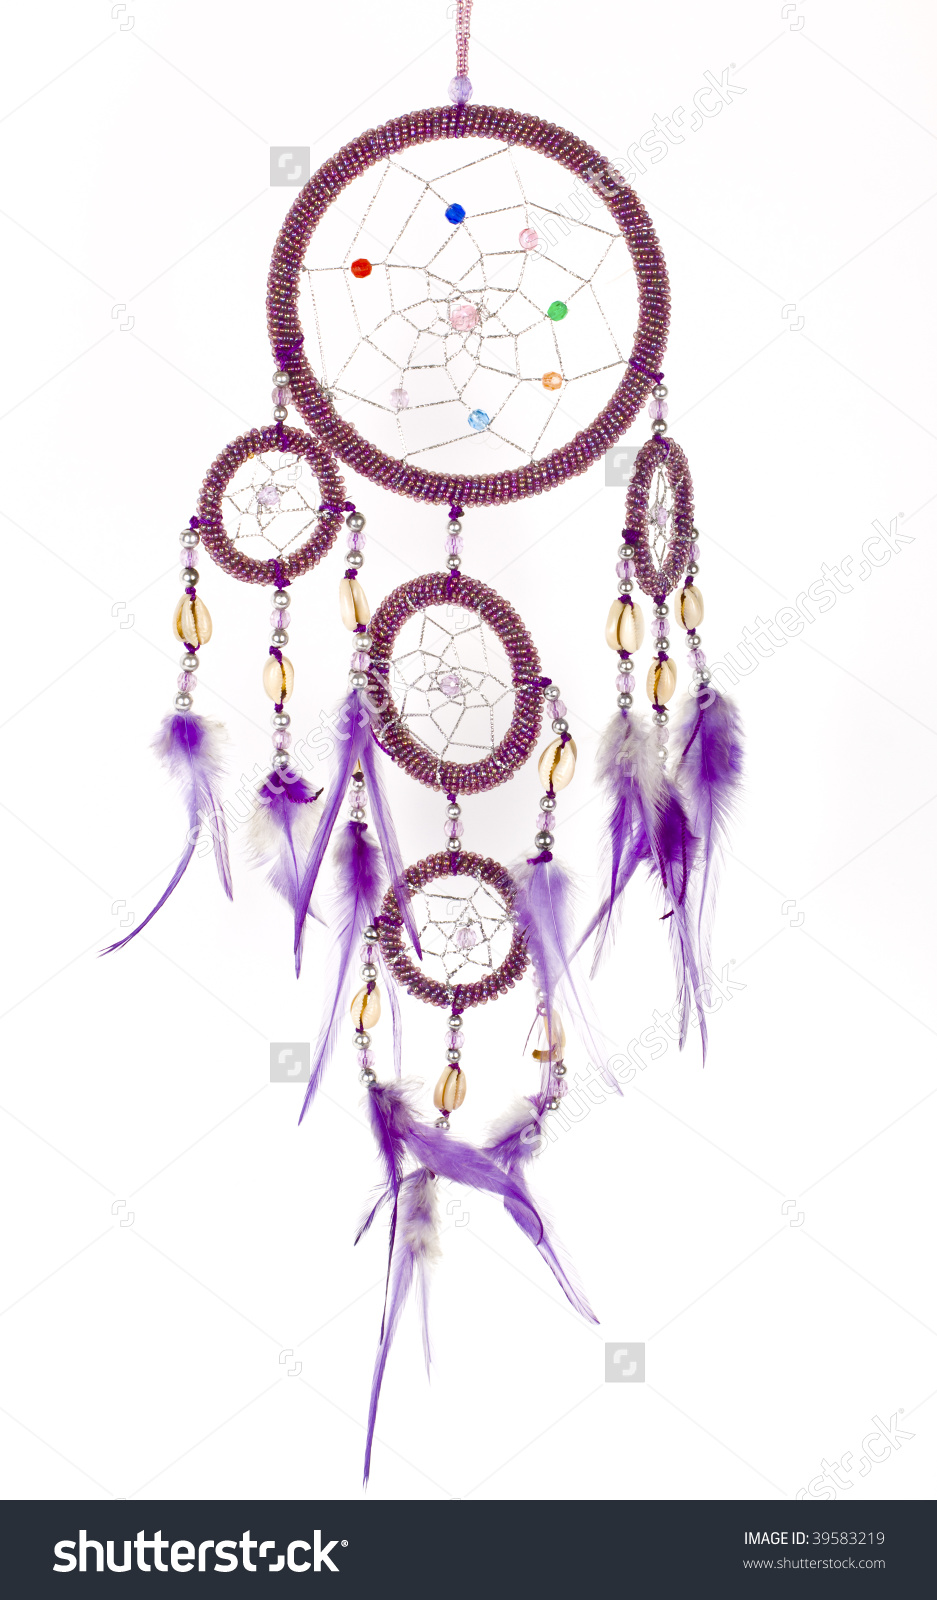 Indian Native American Purple Dream Catcher With Shiny Beads.